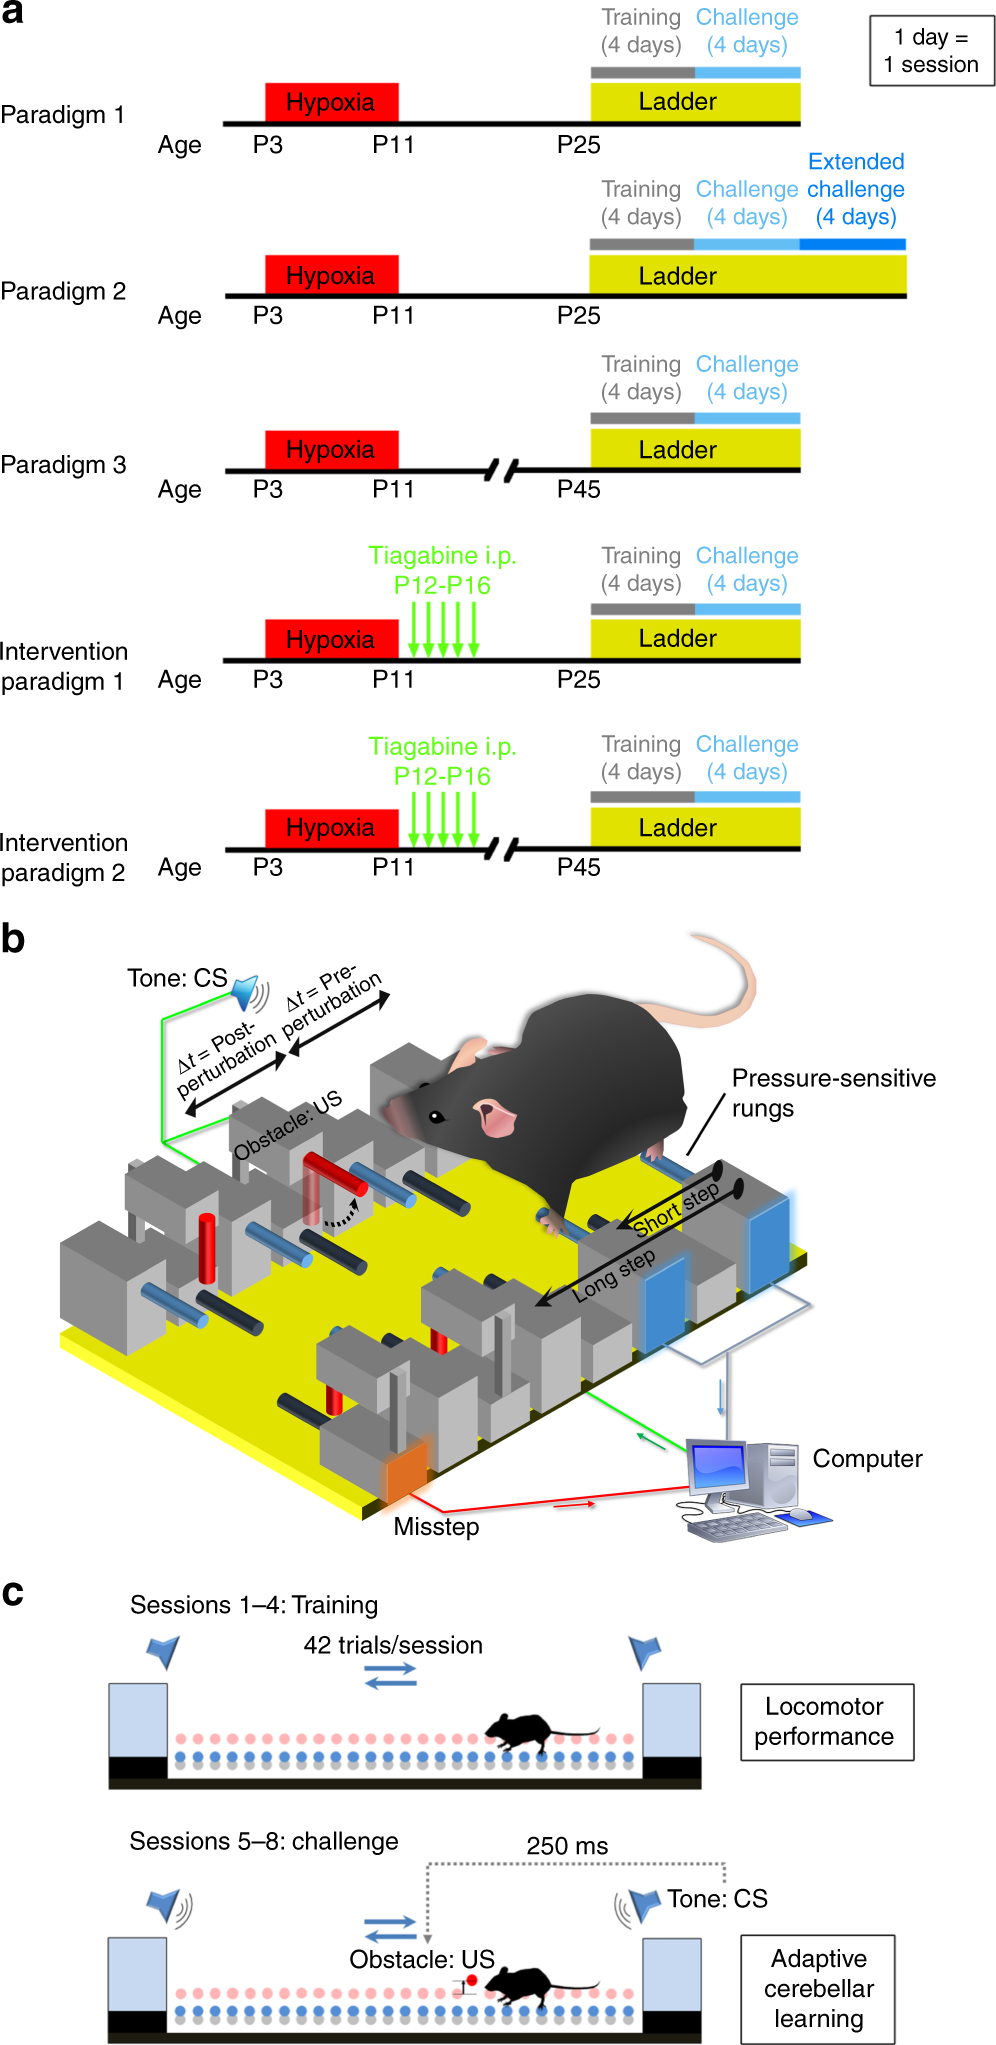 Neonatal Brain Injury Causes Cerebellar Learning Deficits And Logic Diagram The Second Rung Of See A Simple Ladder Purkinje Cell Dysfunction Nature Communications